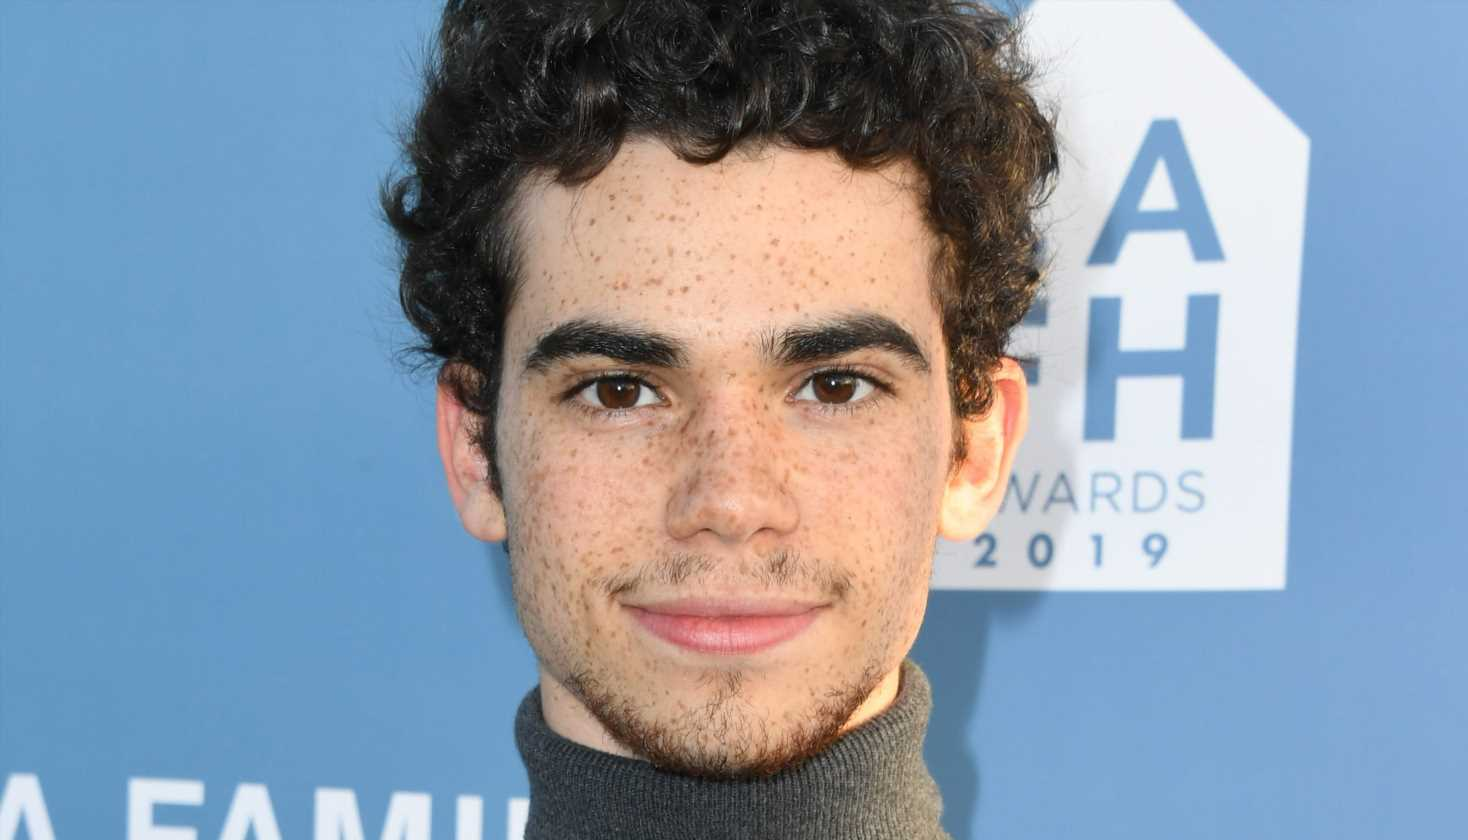 Cameron Boyce's 'sudden unexpected' death was caused by epilepsy, coroner rules